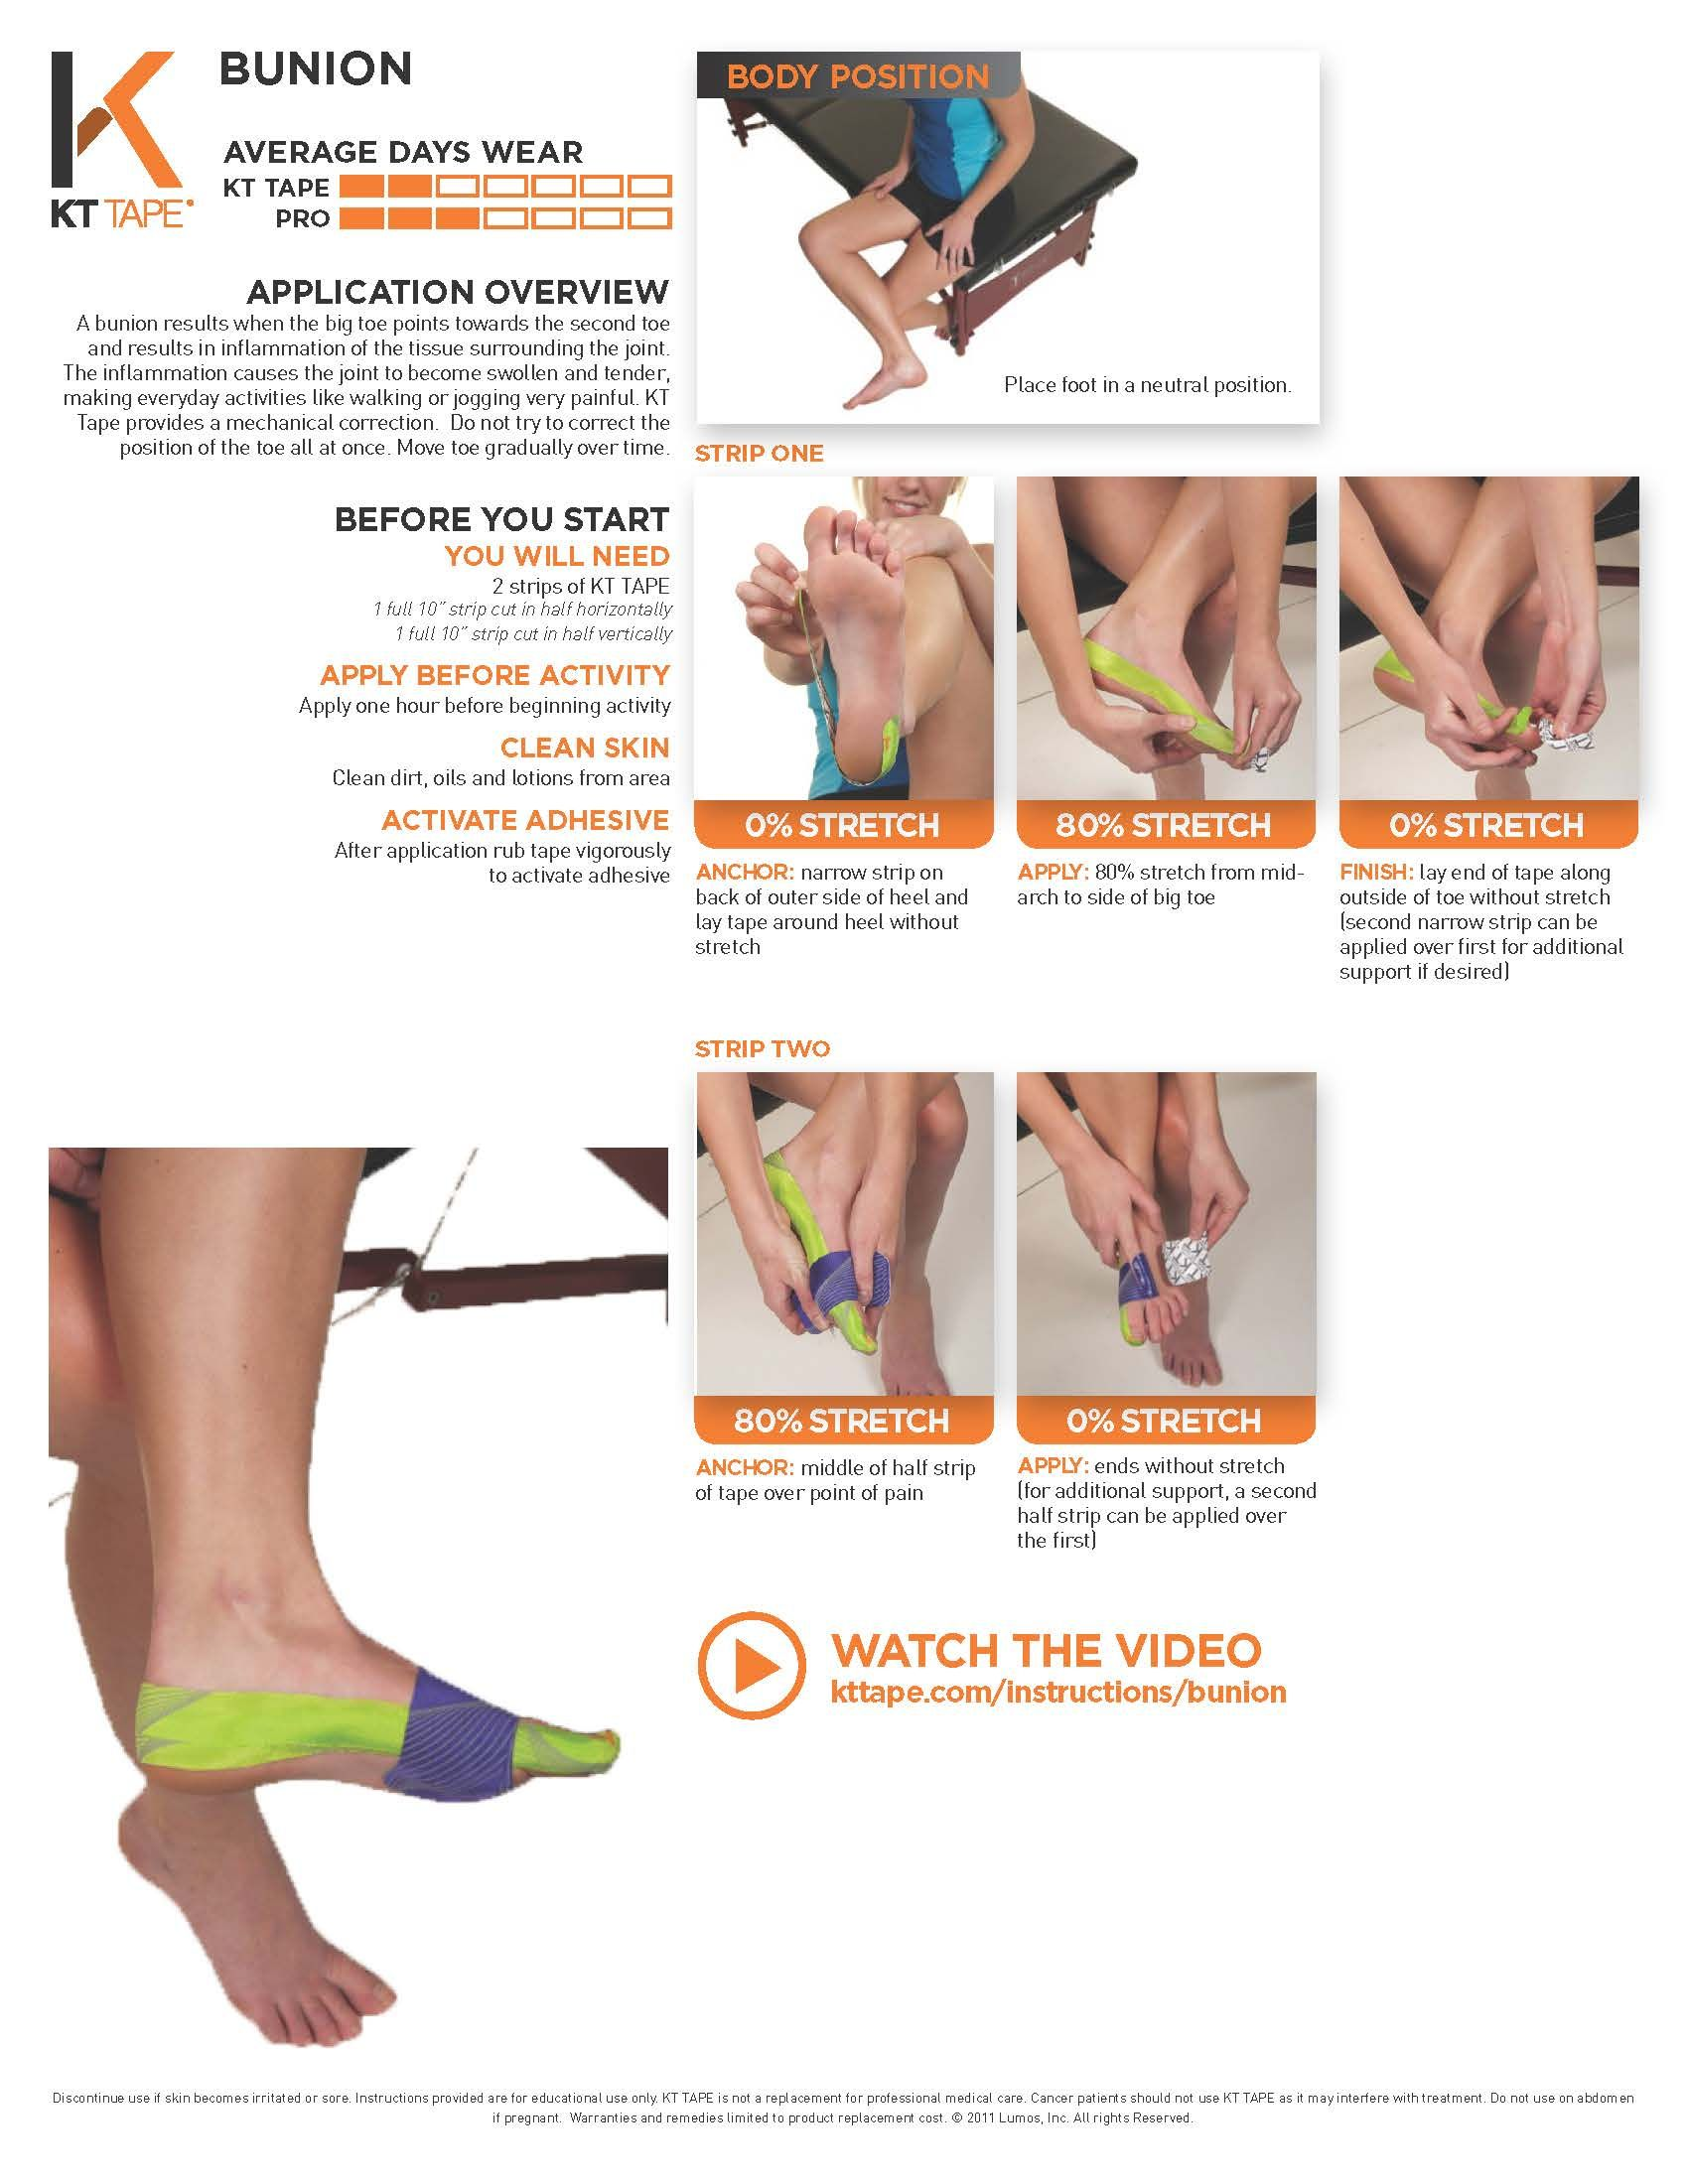 c74e24e79c Printable Taping Instructions | Health | Bunion, Kinesiology taping ...